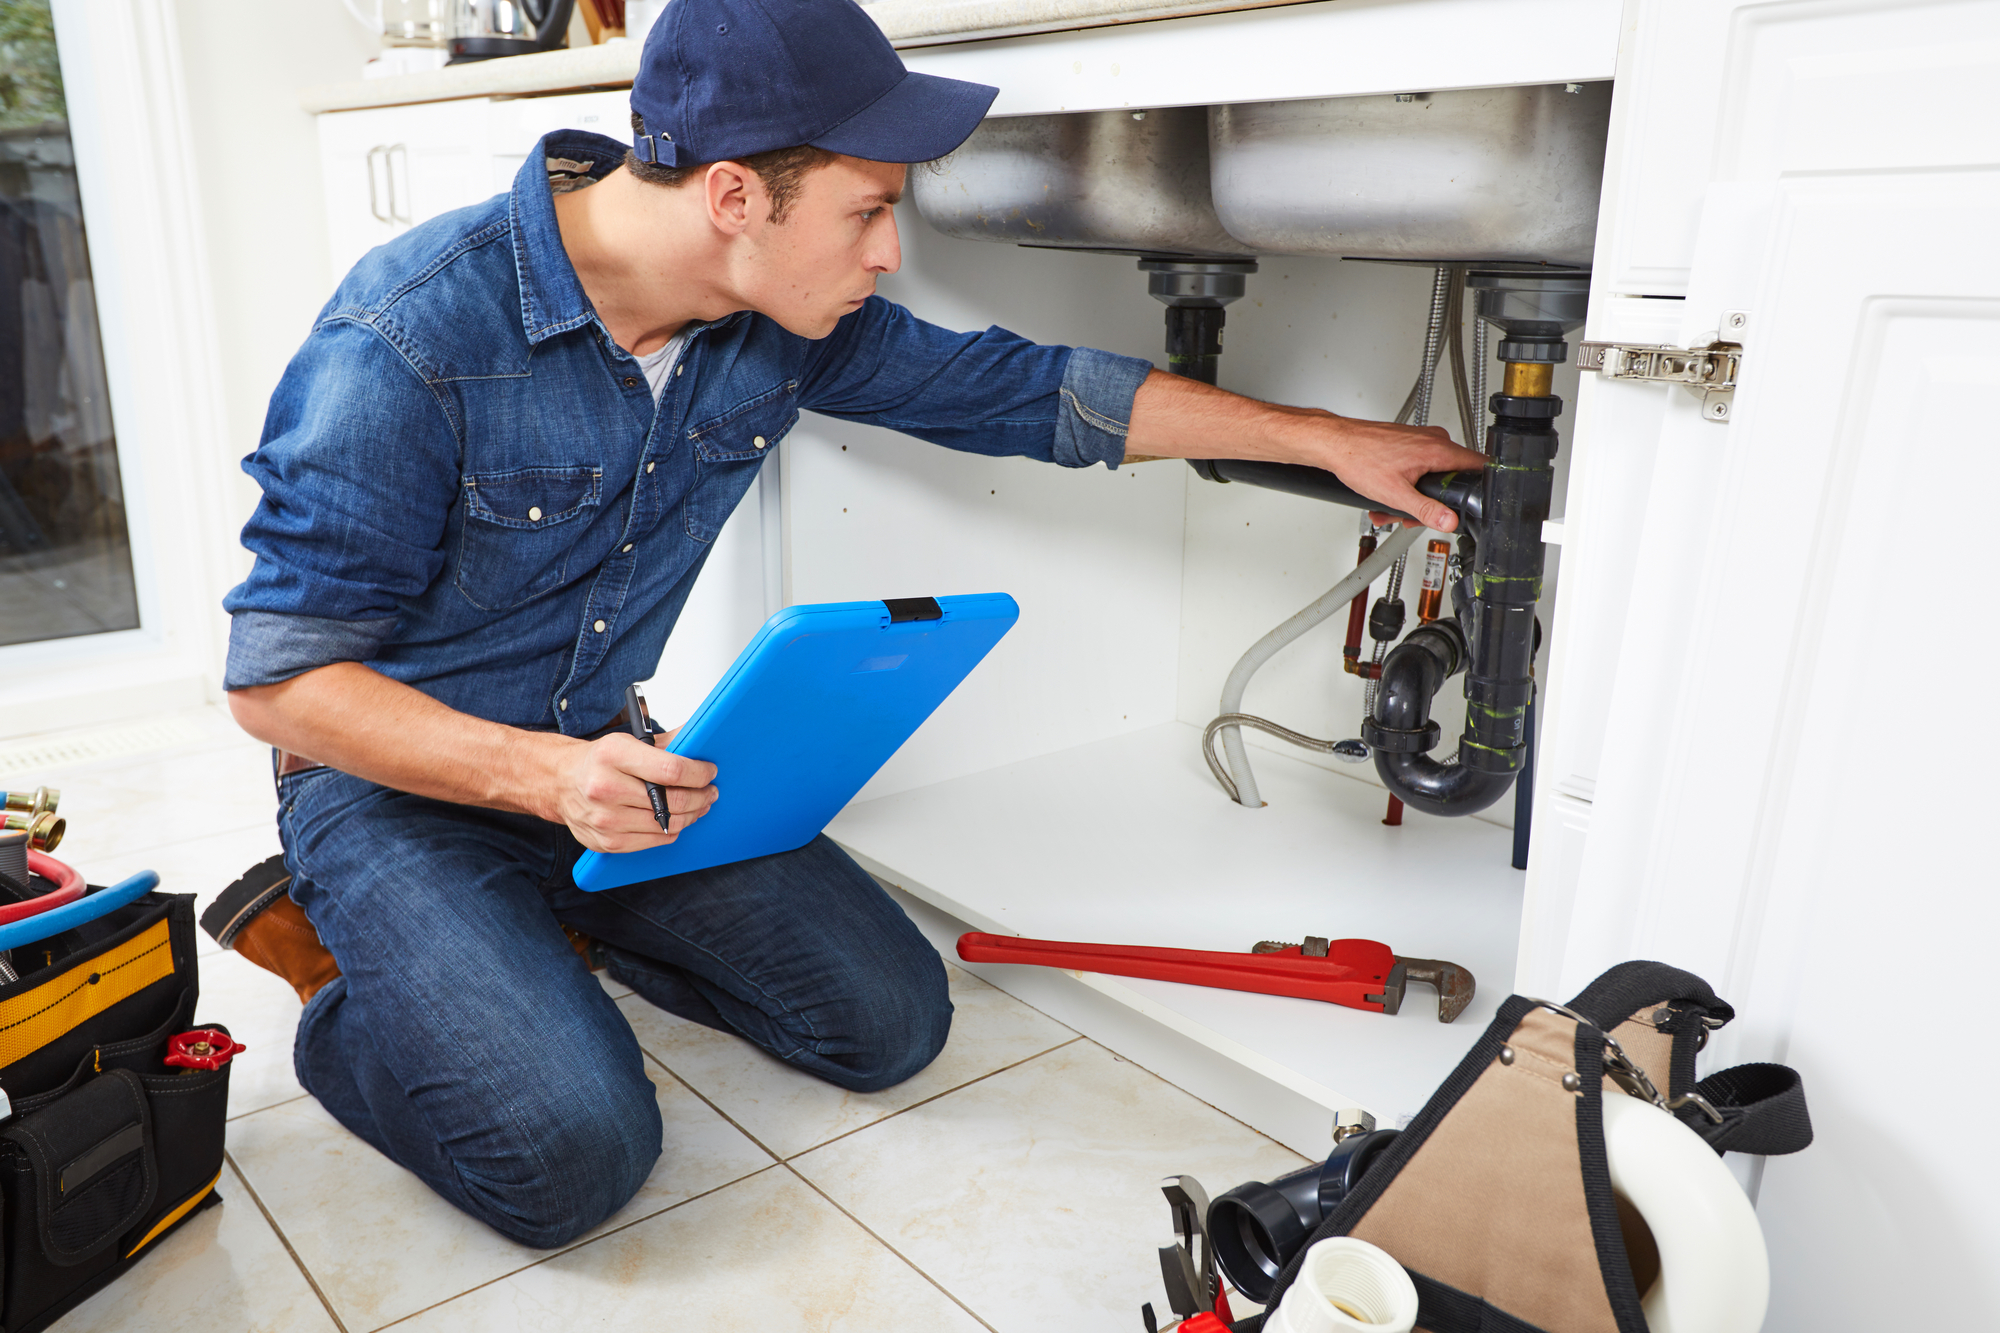 plumber fixing sink – plumbing services in Chicago, IL